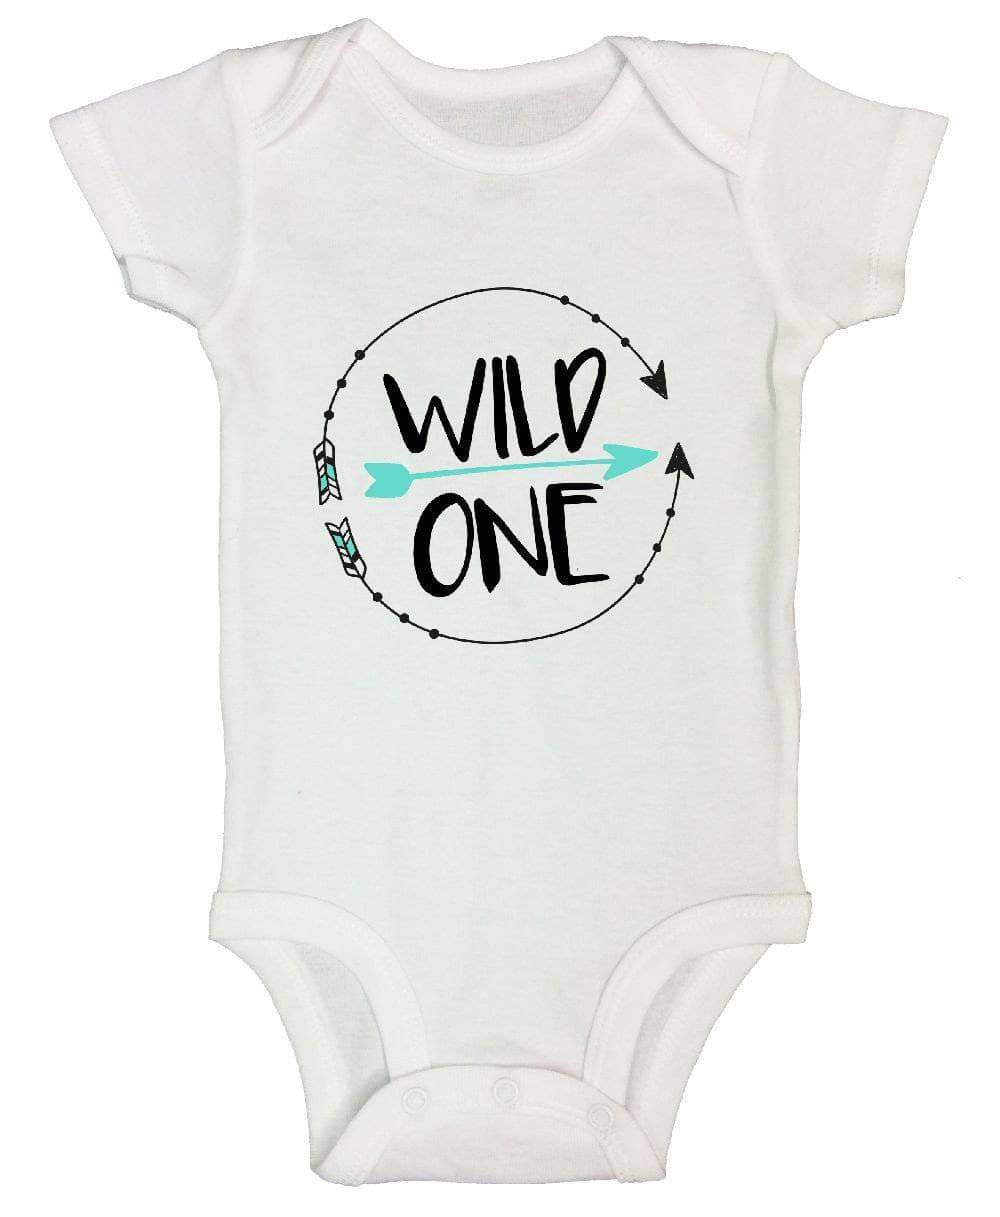 Wild One FUNNY KIDS ONESIE Short Sleeve 0-3 Months Womens Tank Tops